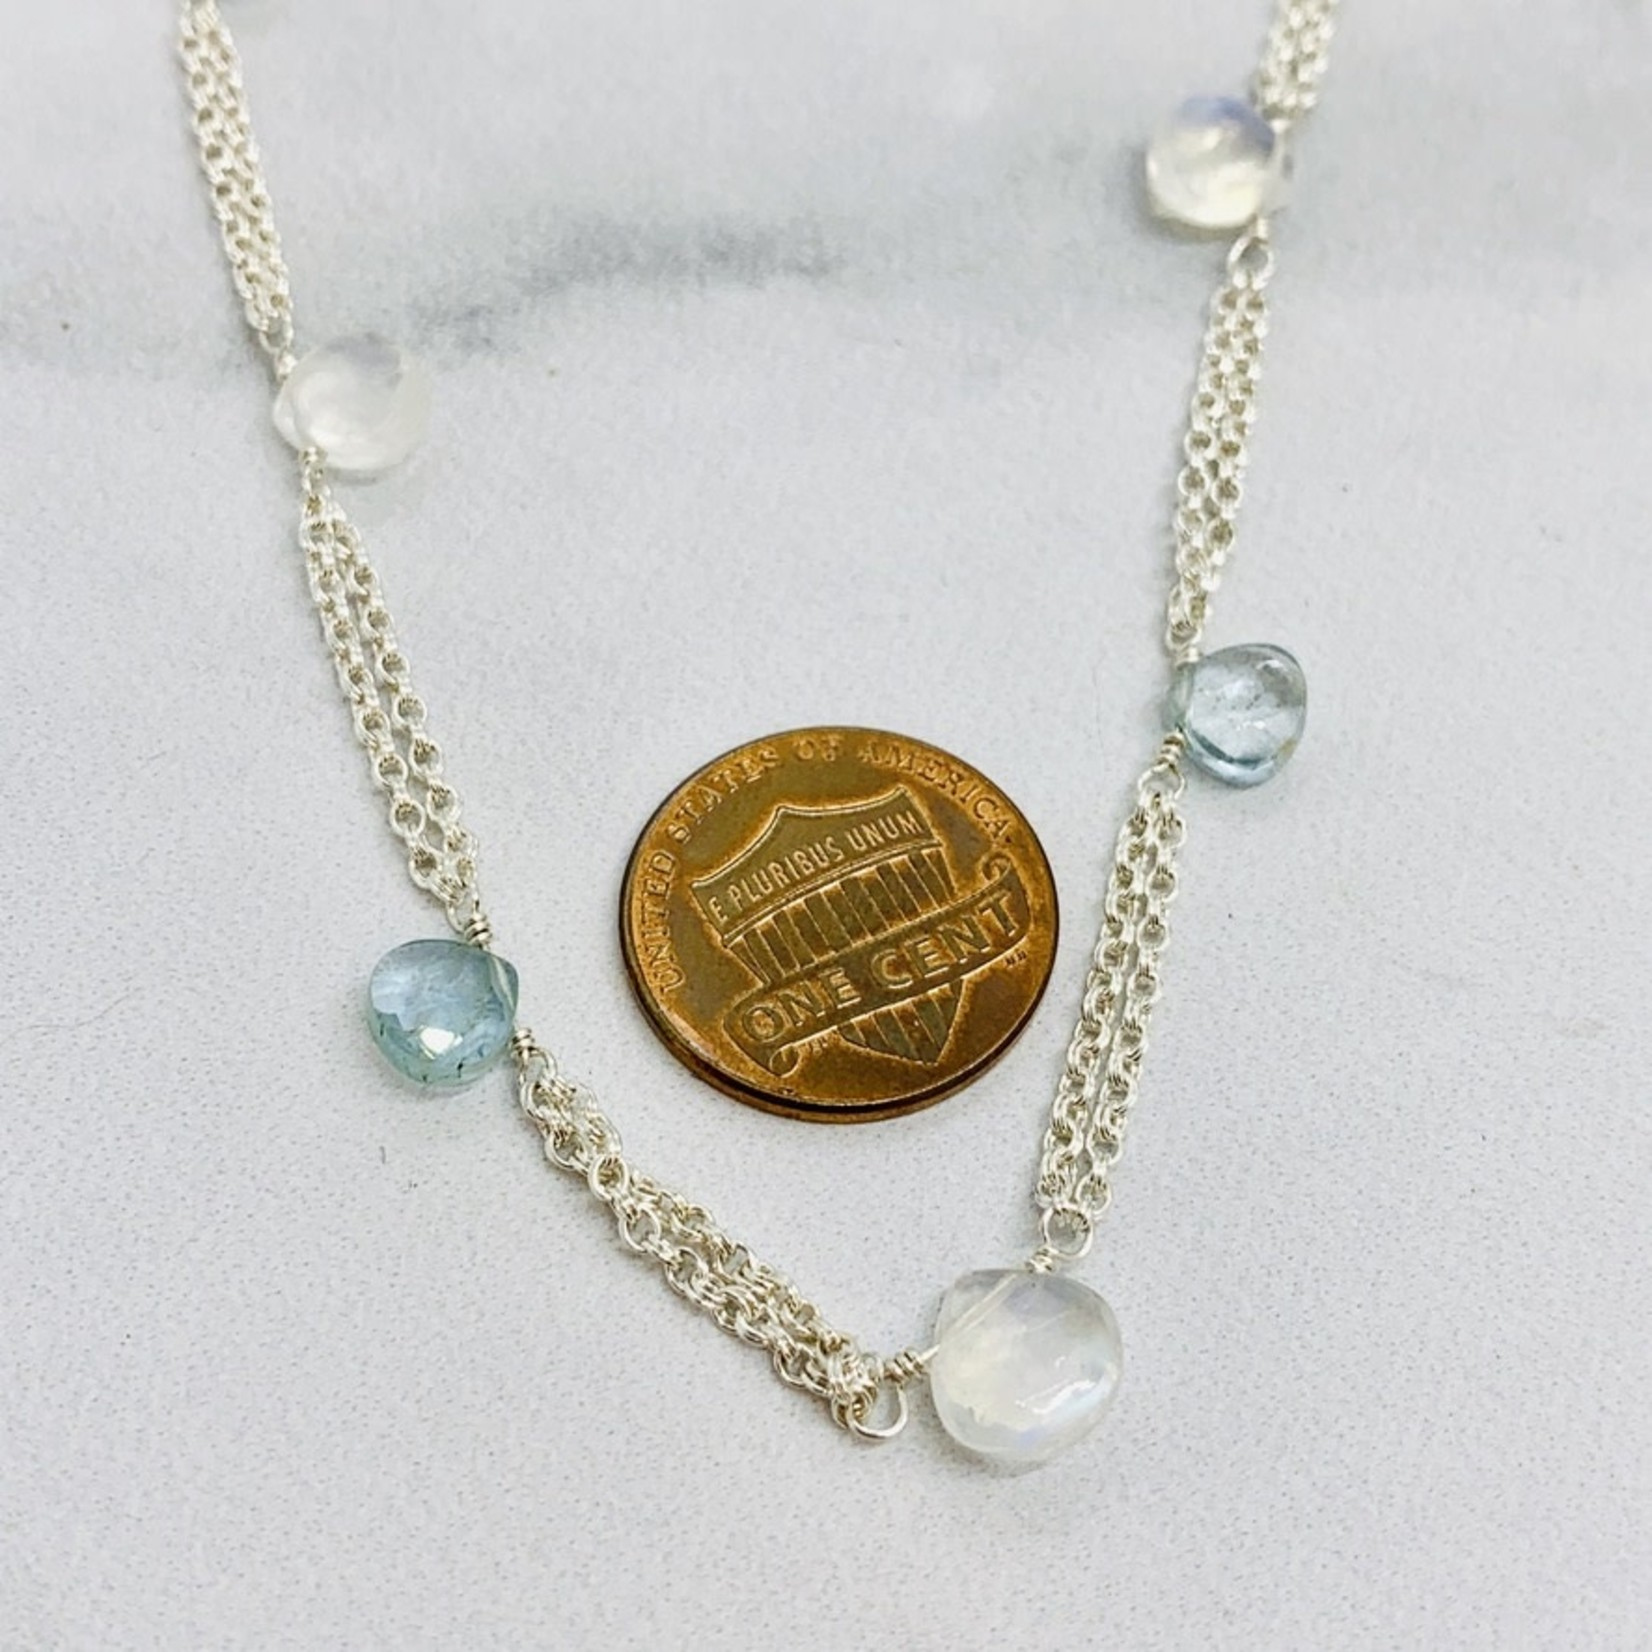 Handmade necklace with double chain, 5 moss aquamarine briolette, 4 rainbow moonstone briolette